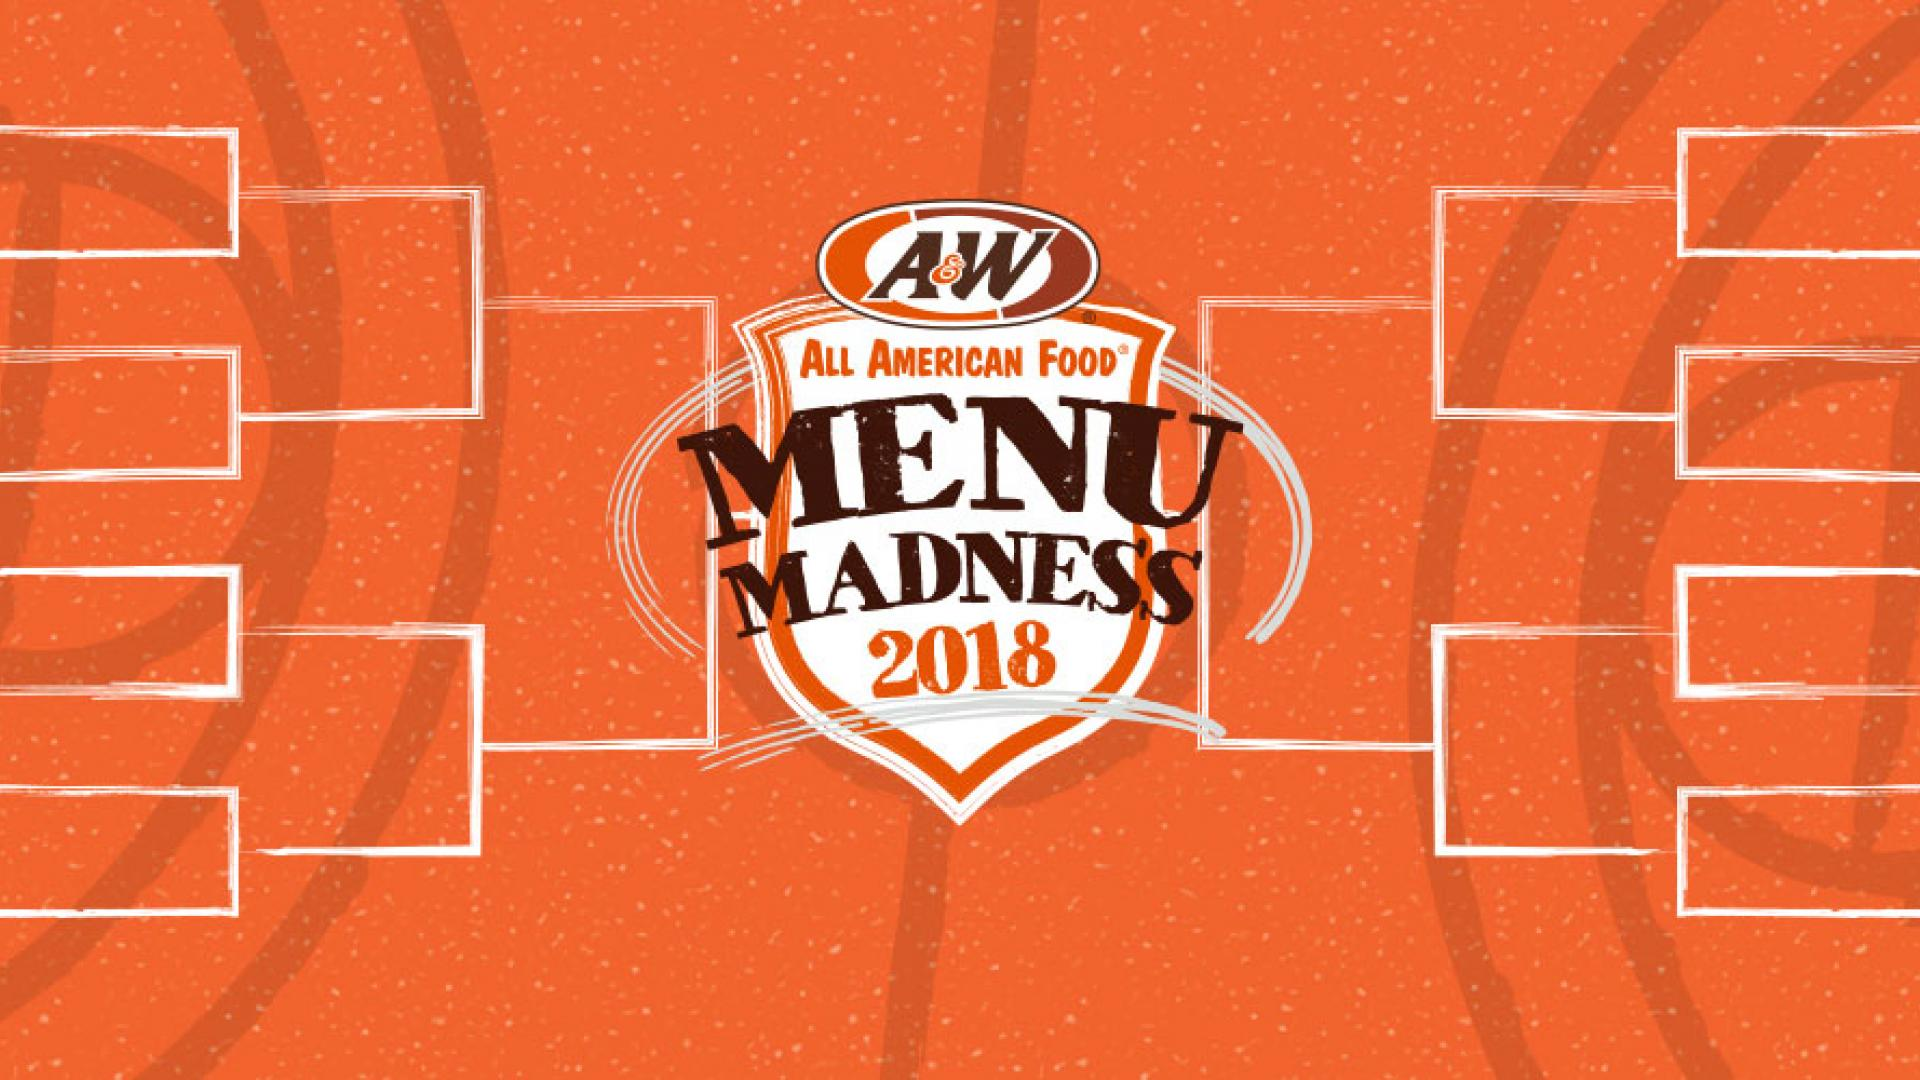 A&W Menu Madness Bracket